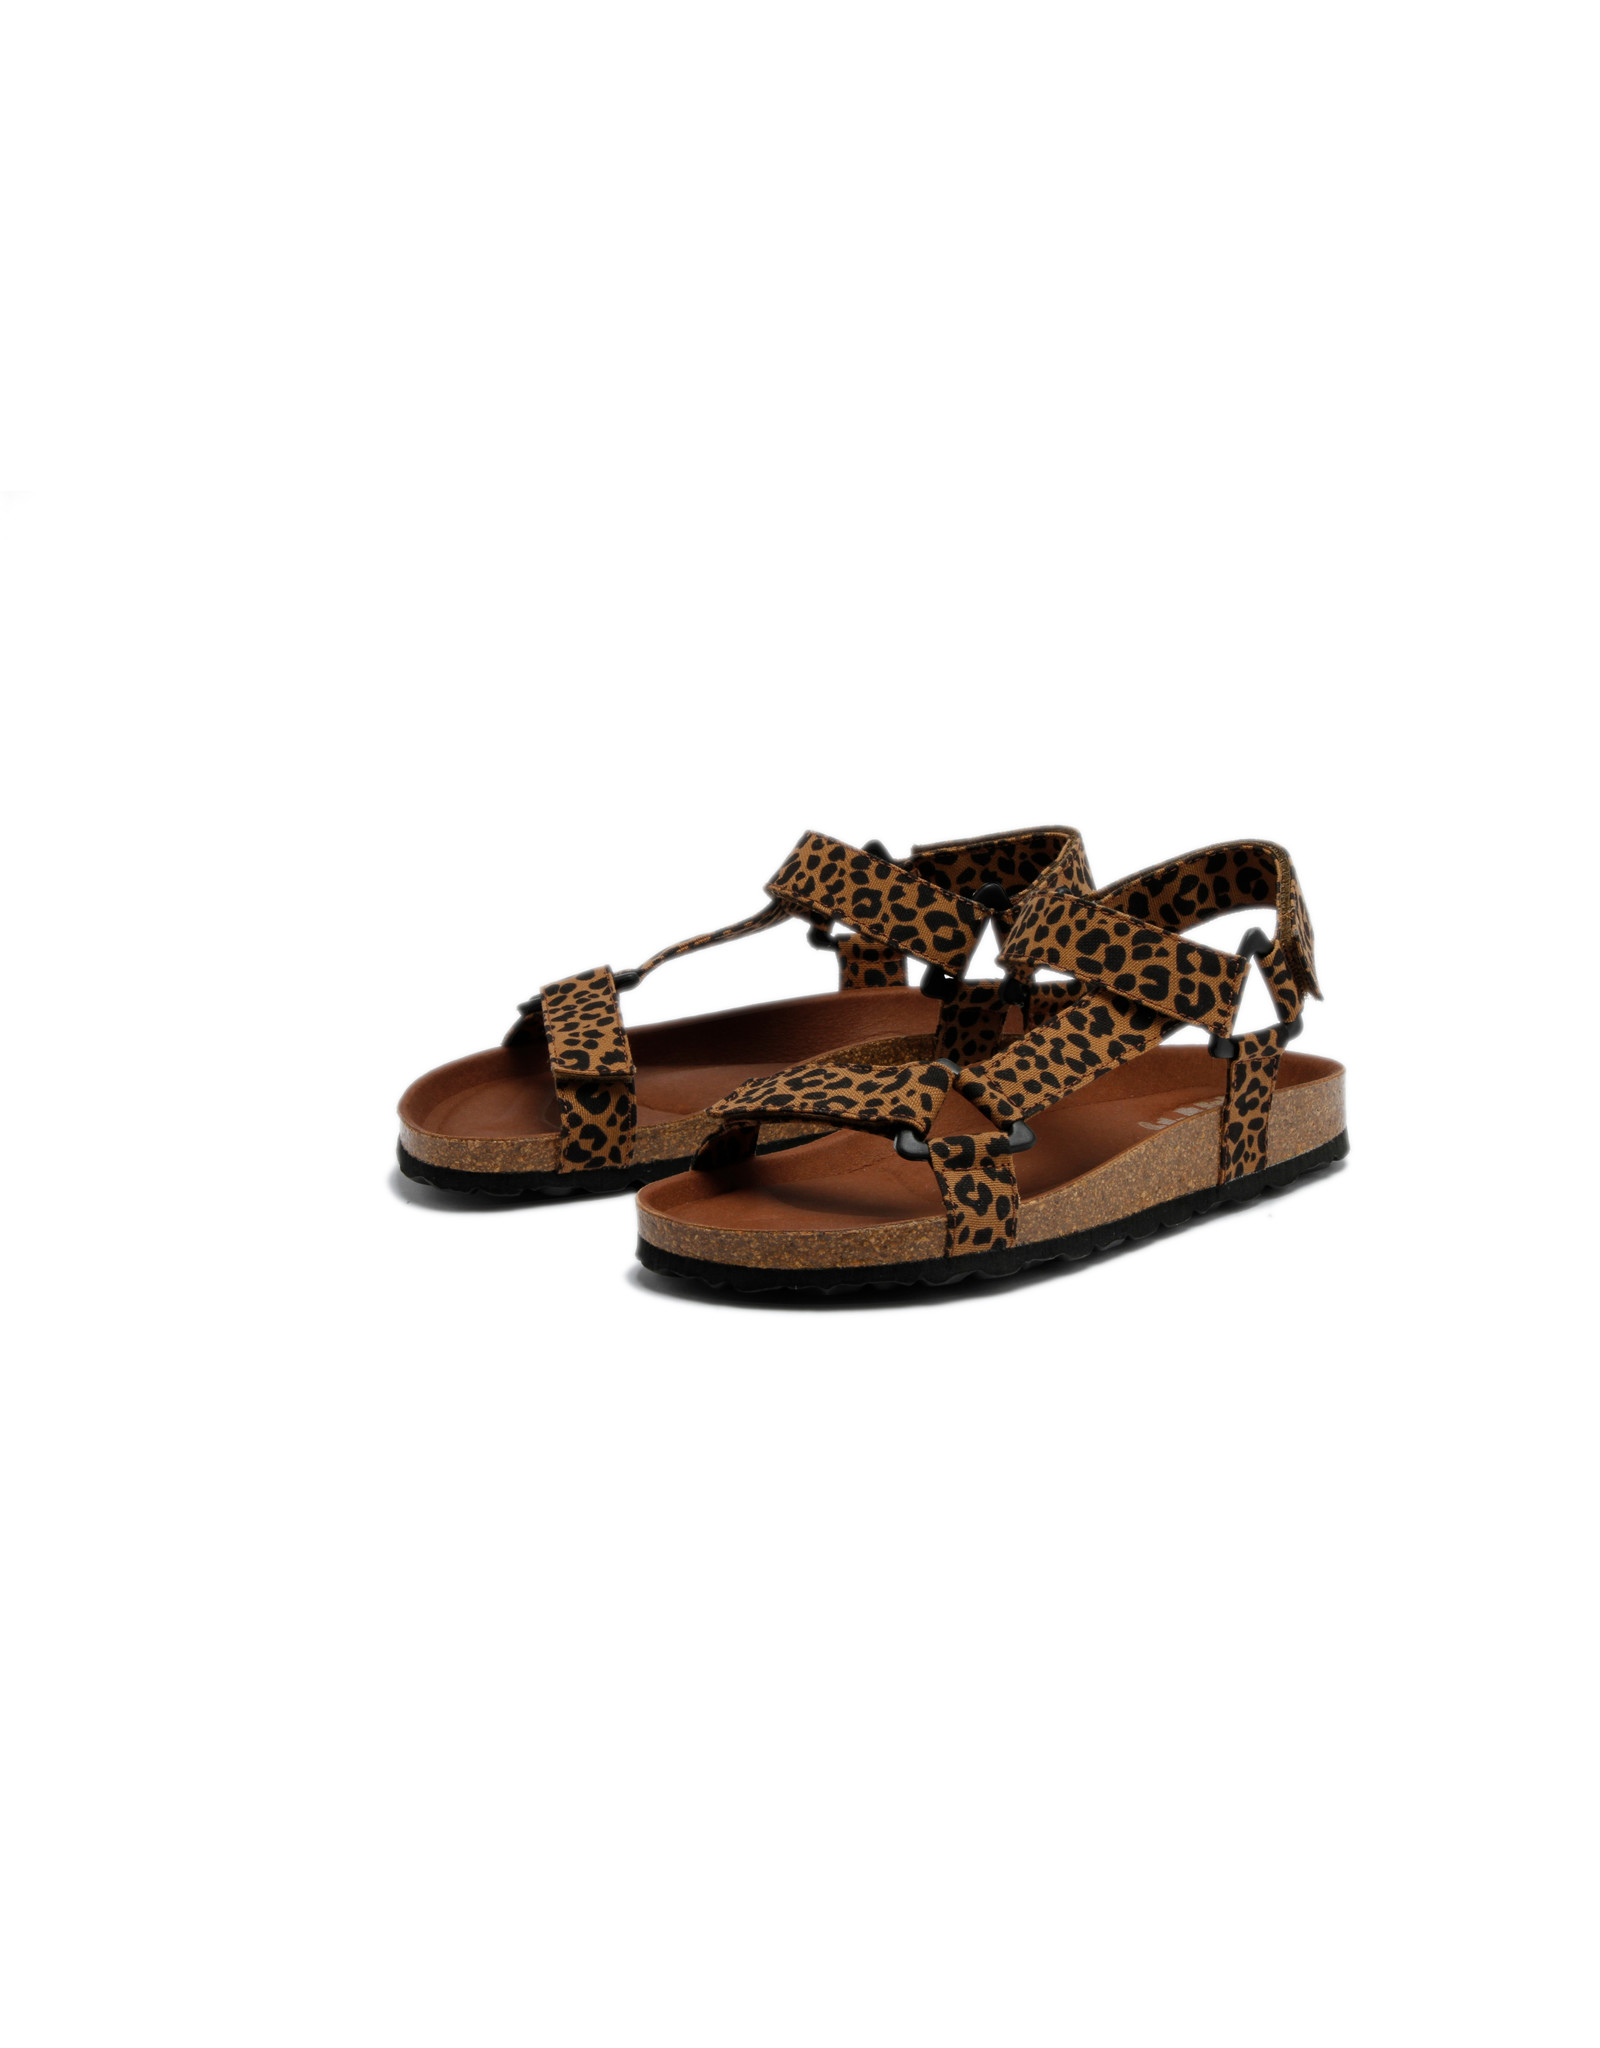 Grand Step Shoes Leo sandals